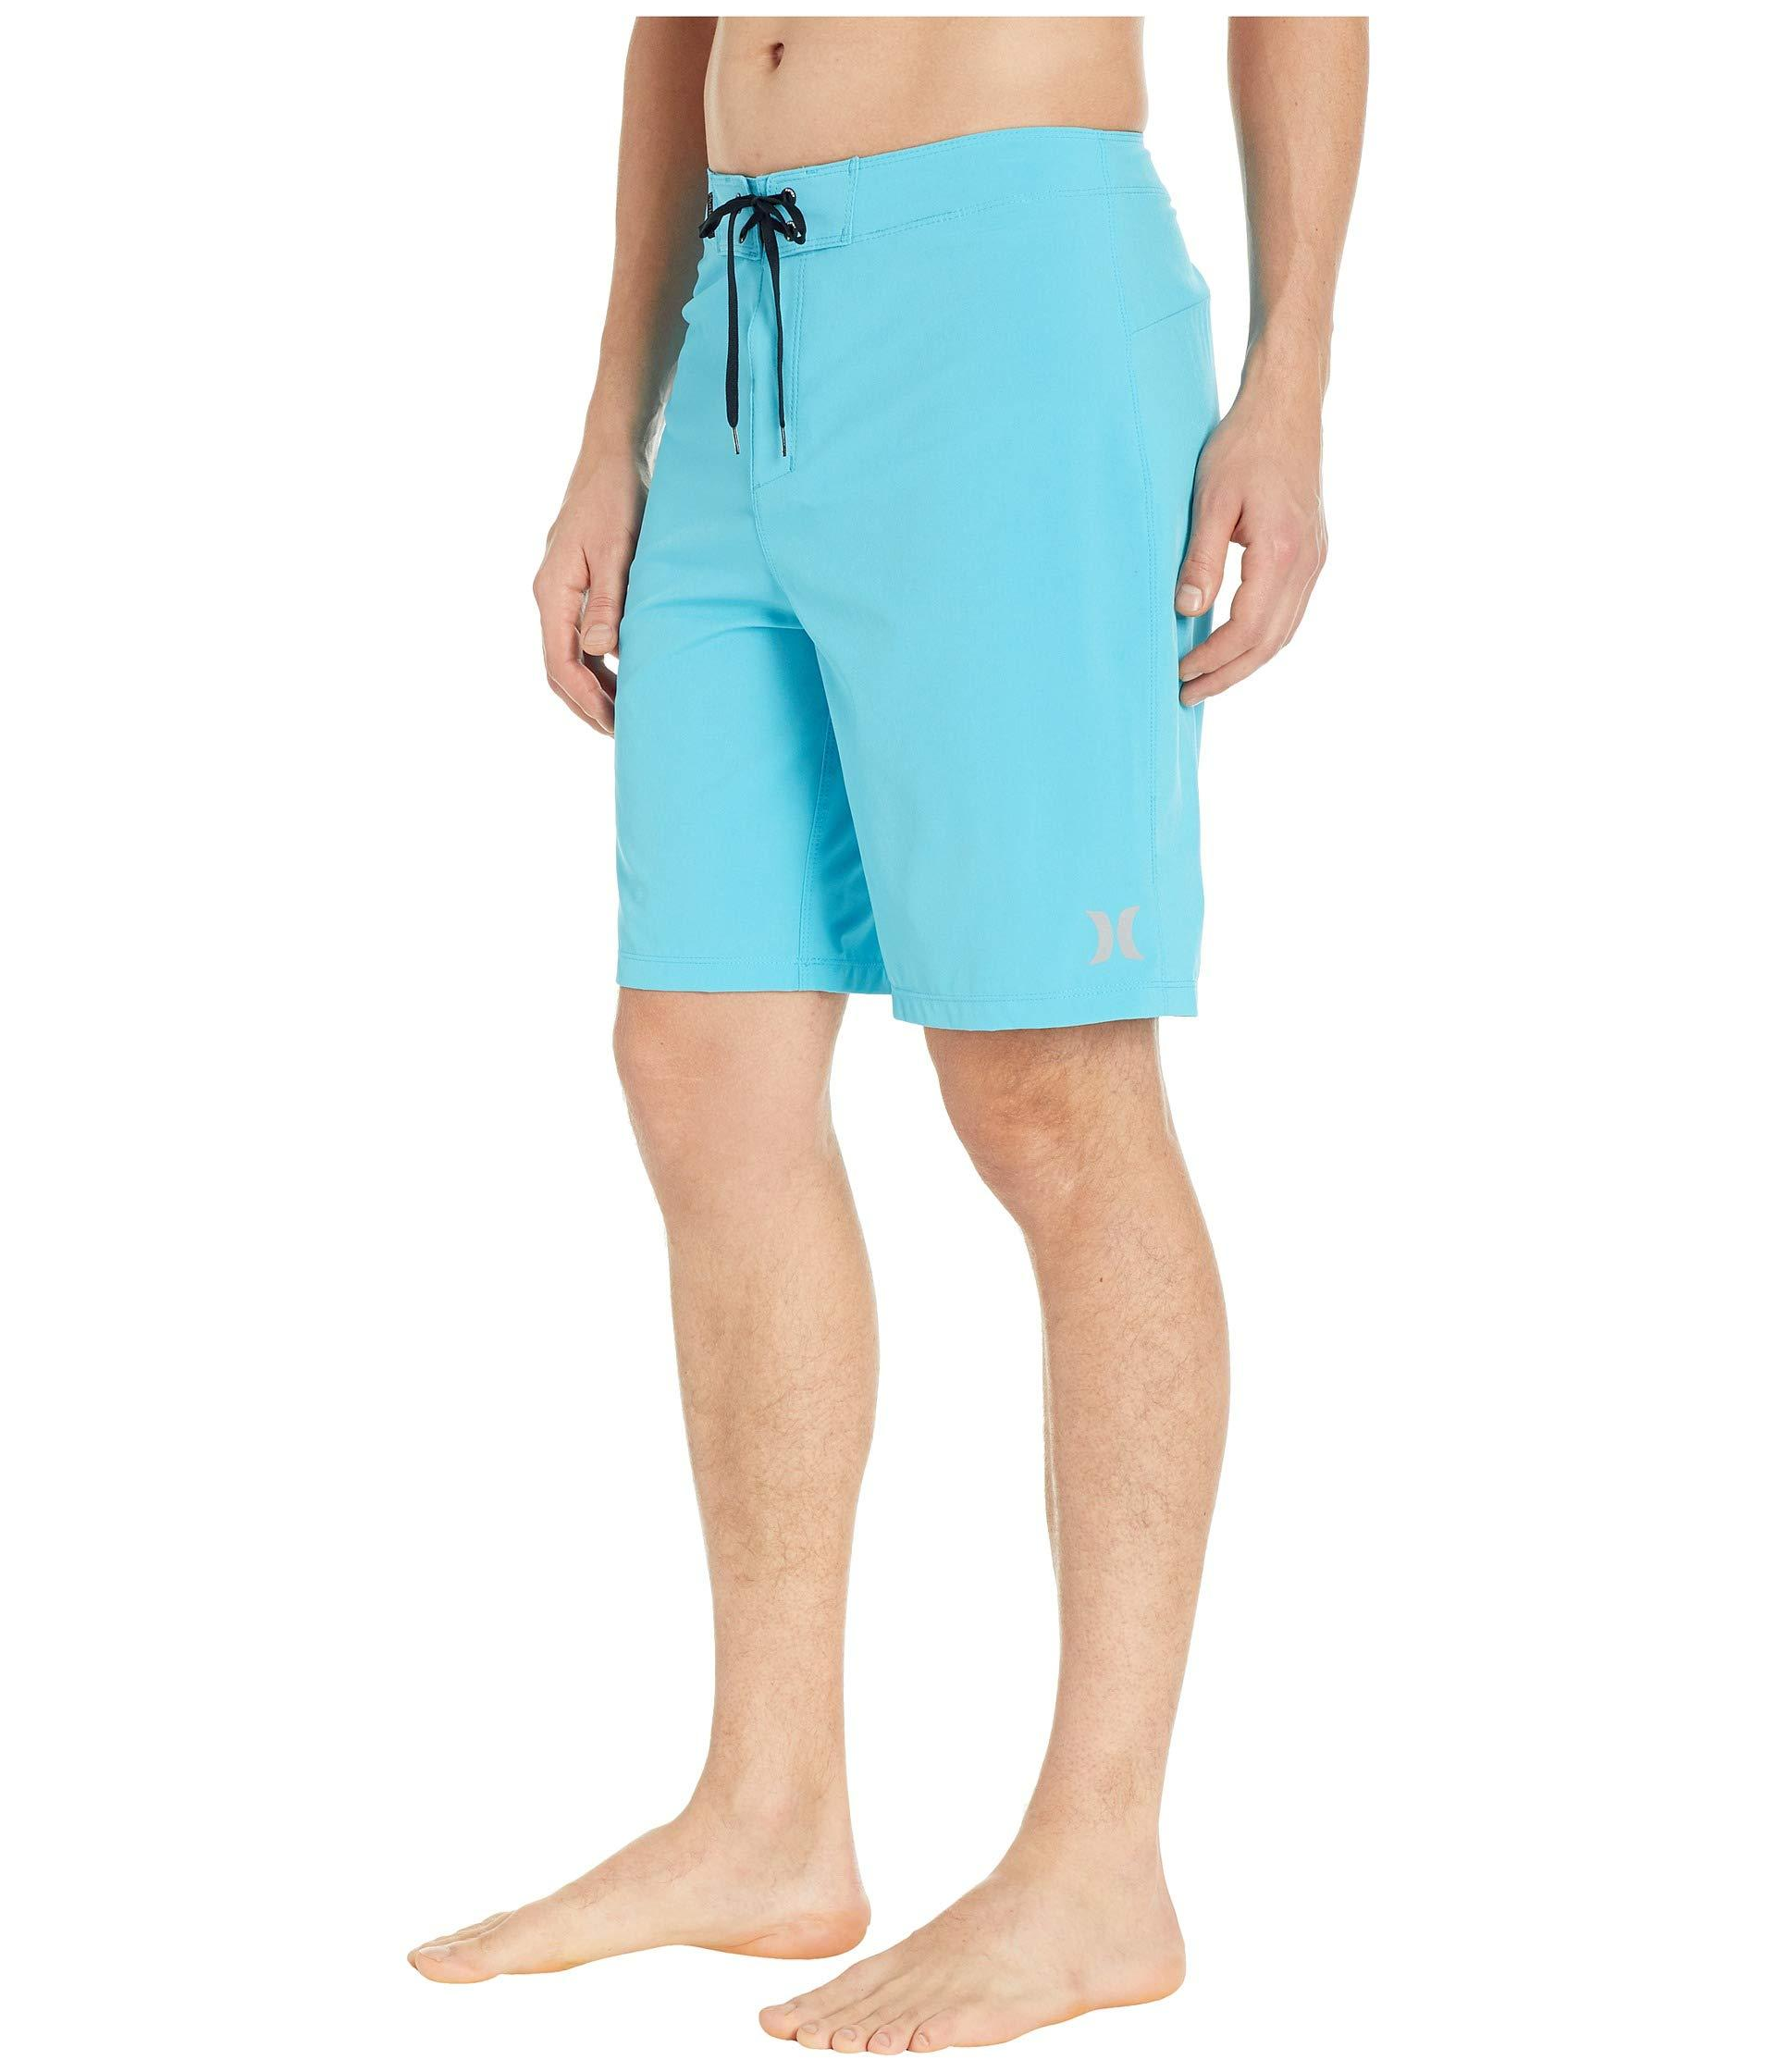 631cebe9bb Lyst - Hurley Phantom One Only 20 Stretch Boardshorts (cool Grey) Men's  Swimwear in Blue for Men